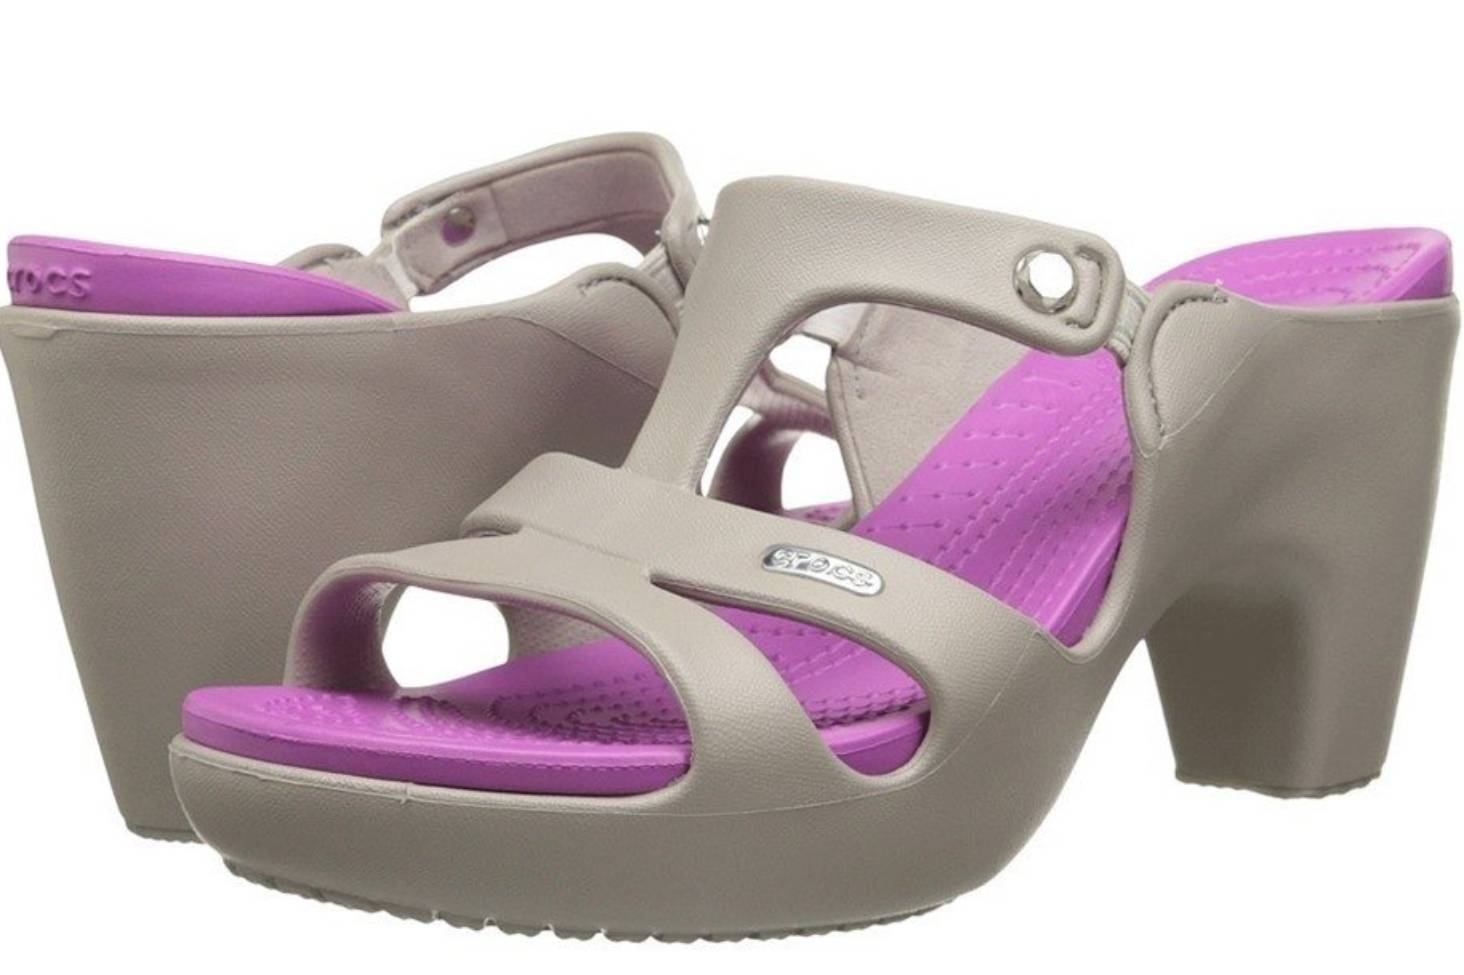 5d2243d82 Crocs can t keep its ugly foam high-heeled sandal in stock